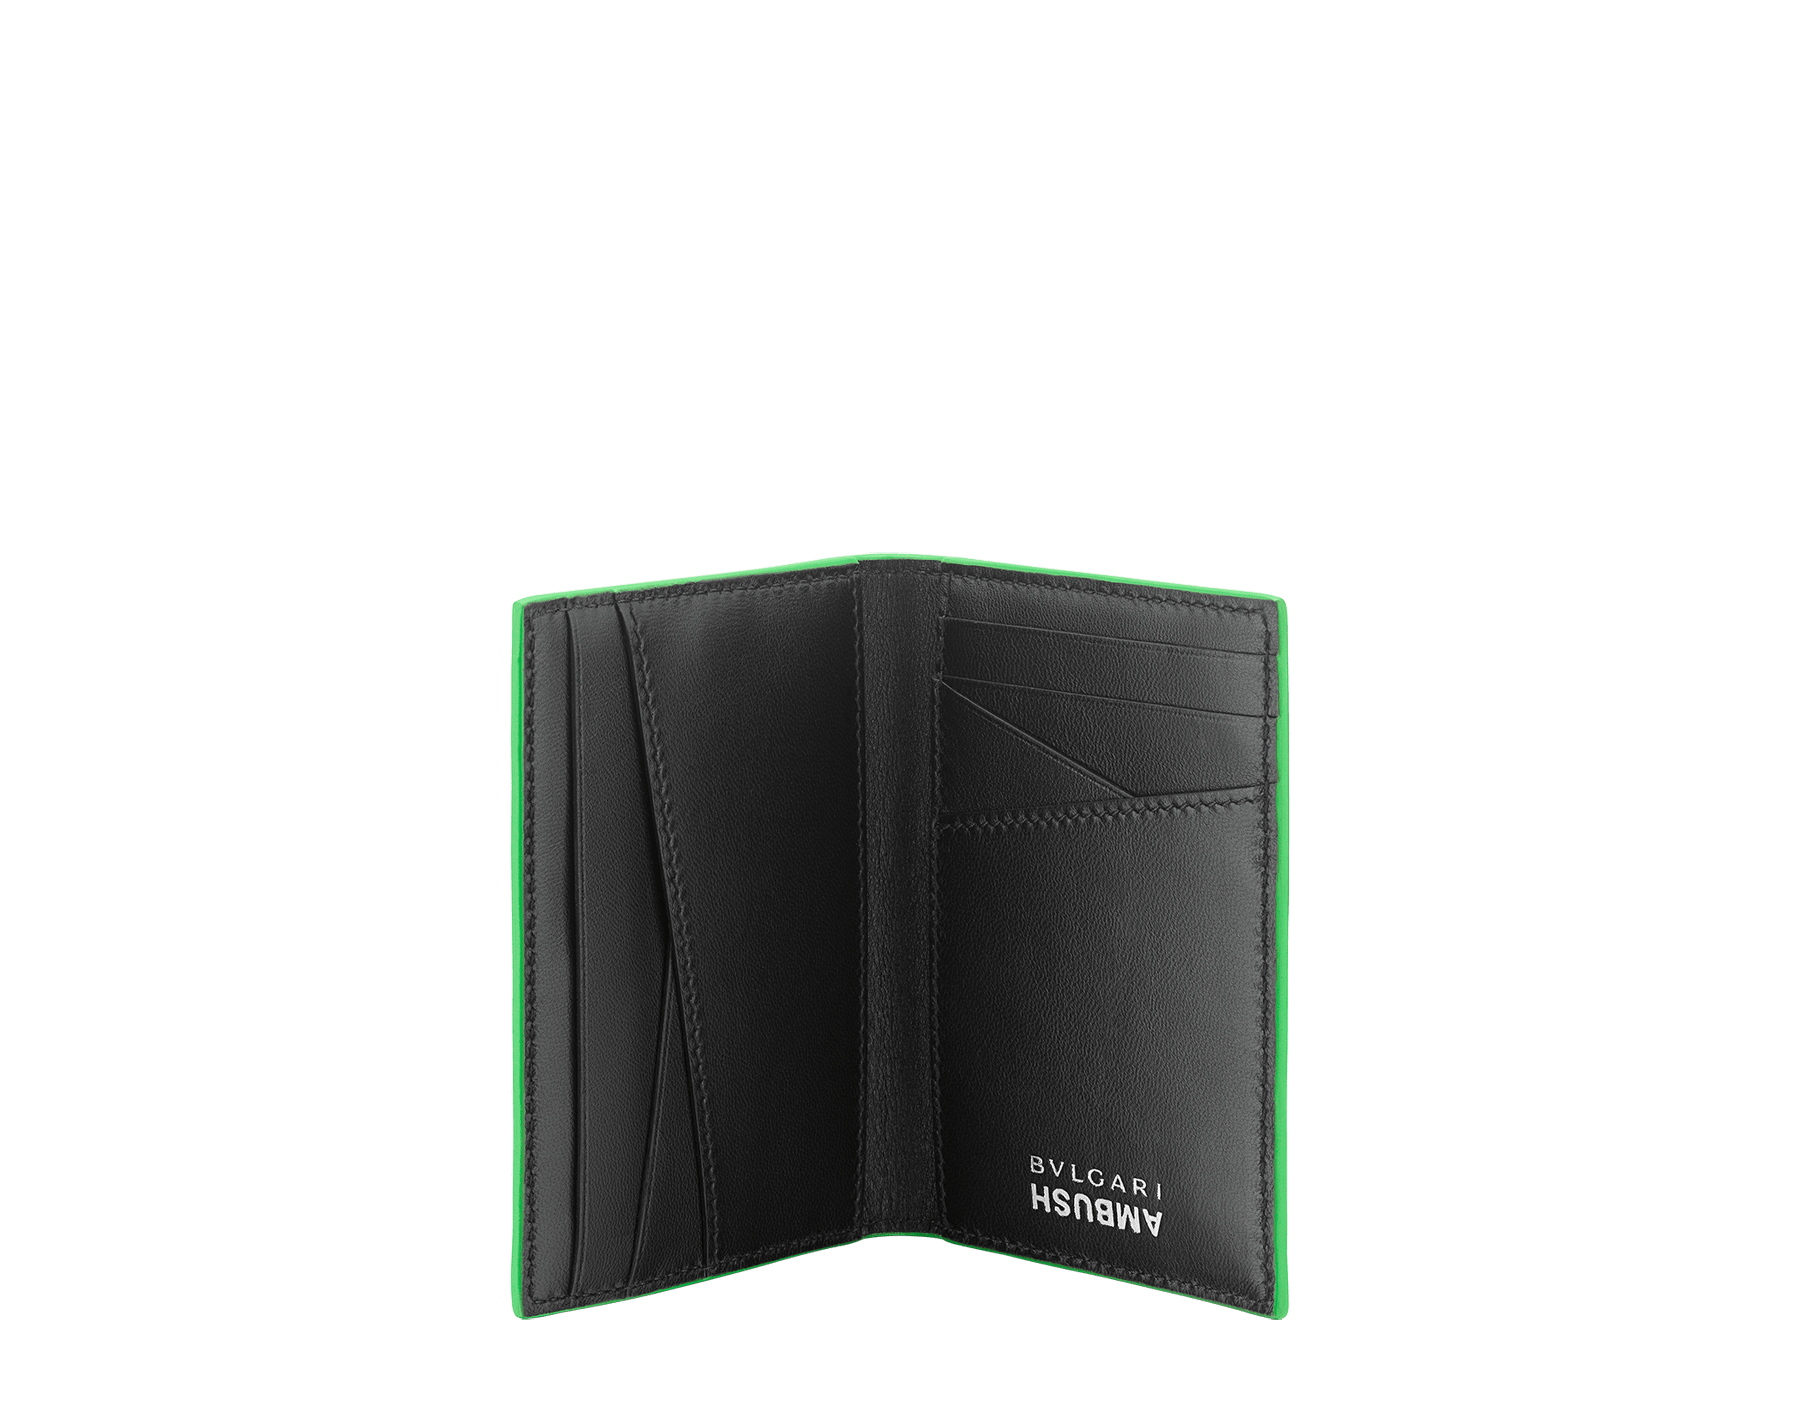 """Ambush x Bvlgari"" vertical card holder in bright green and black nappa leather, palladium-plated brass ""BVLGARI AMBUSH"" décor on one side and special ""BVLGARI AMBUSH"" logo print on the other. Limited Edition. 290359 image 2"